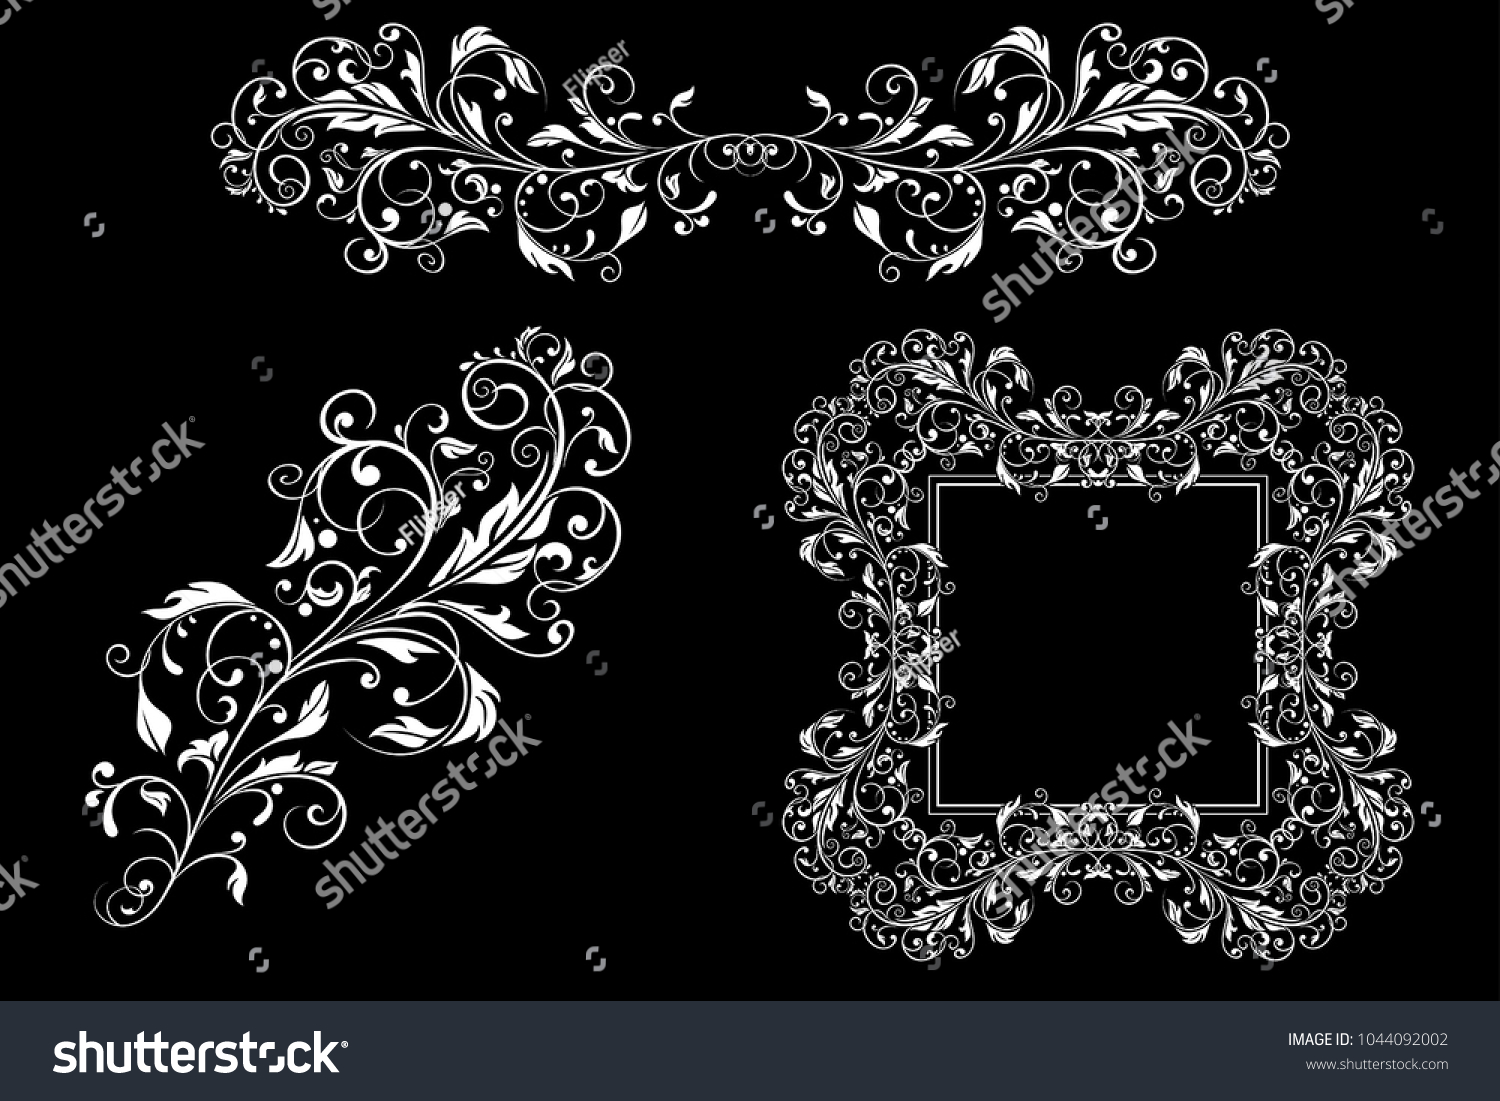 Floral Decorative Frame Ornaments Wedding Invitation Stock Vector ...